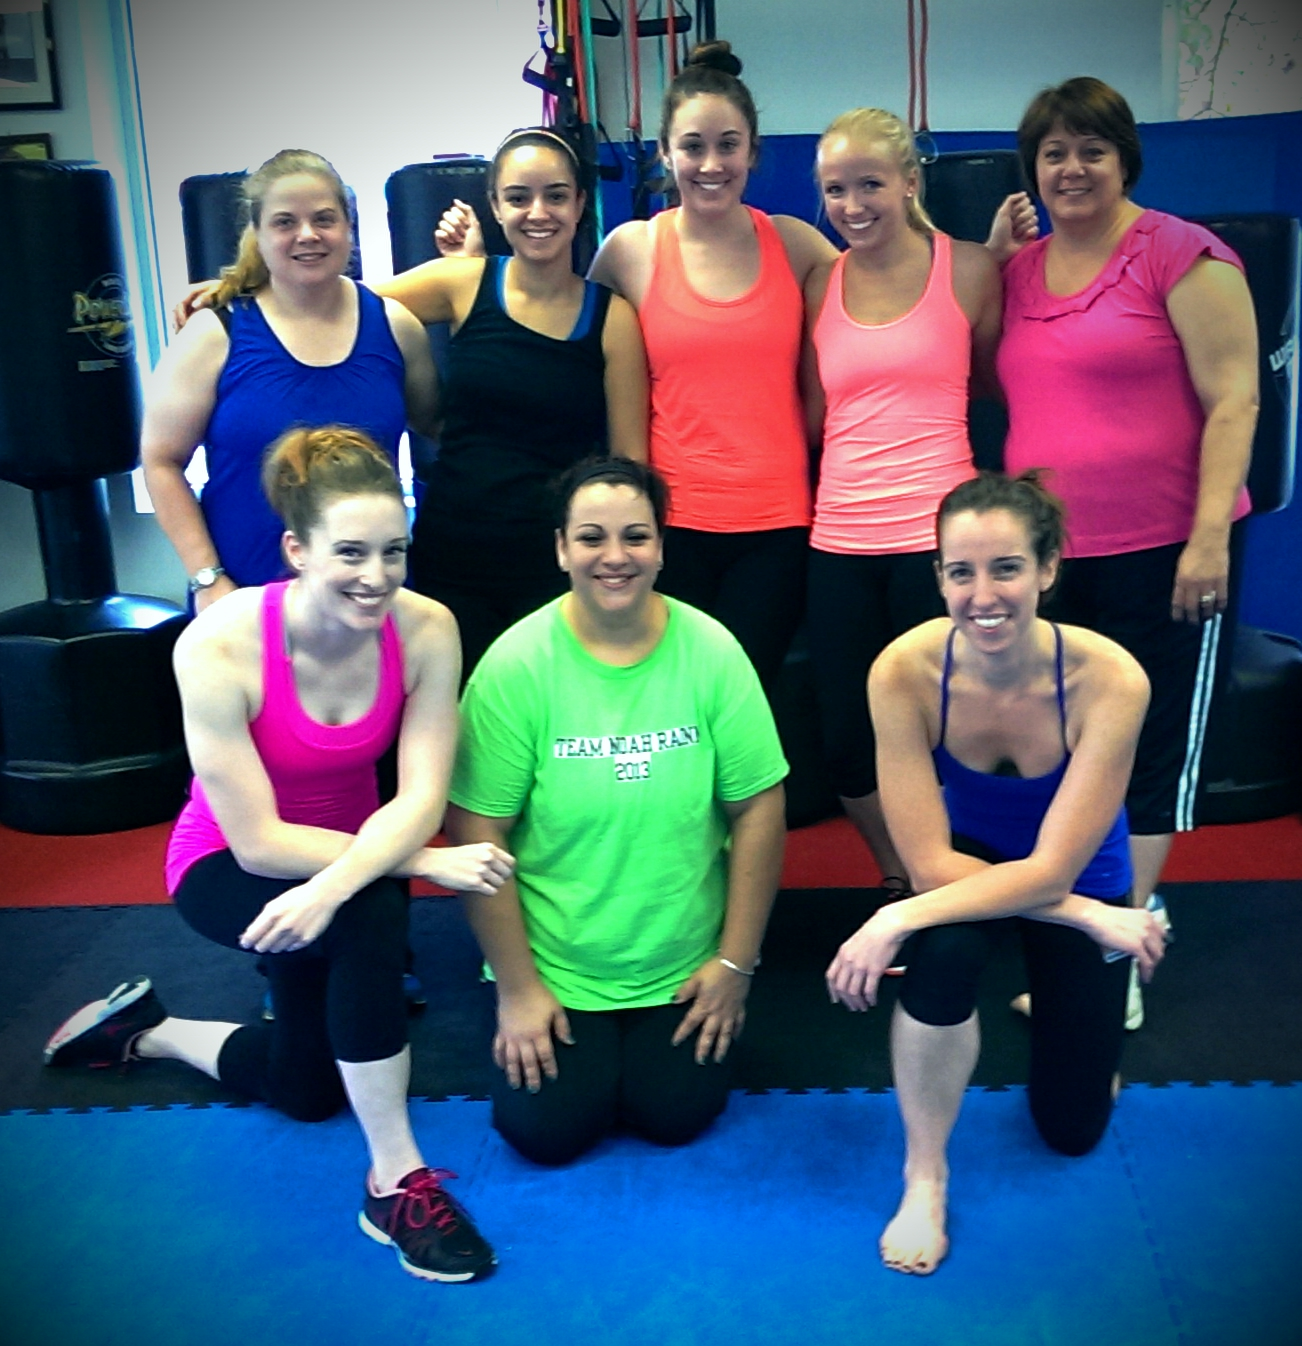 The wonderful women Angela (bottom right) and I are honored to have trained during Agostini's 12 Weeks of Christmas Fitness Challenge (2013-2014).